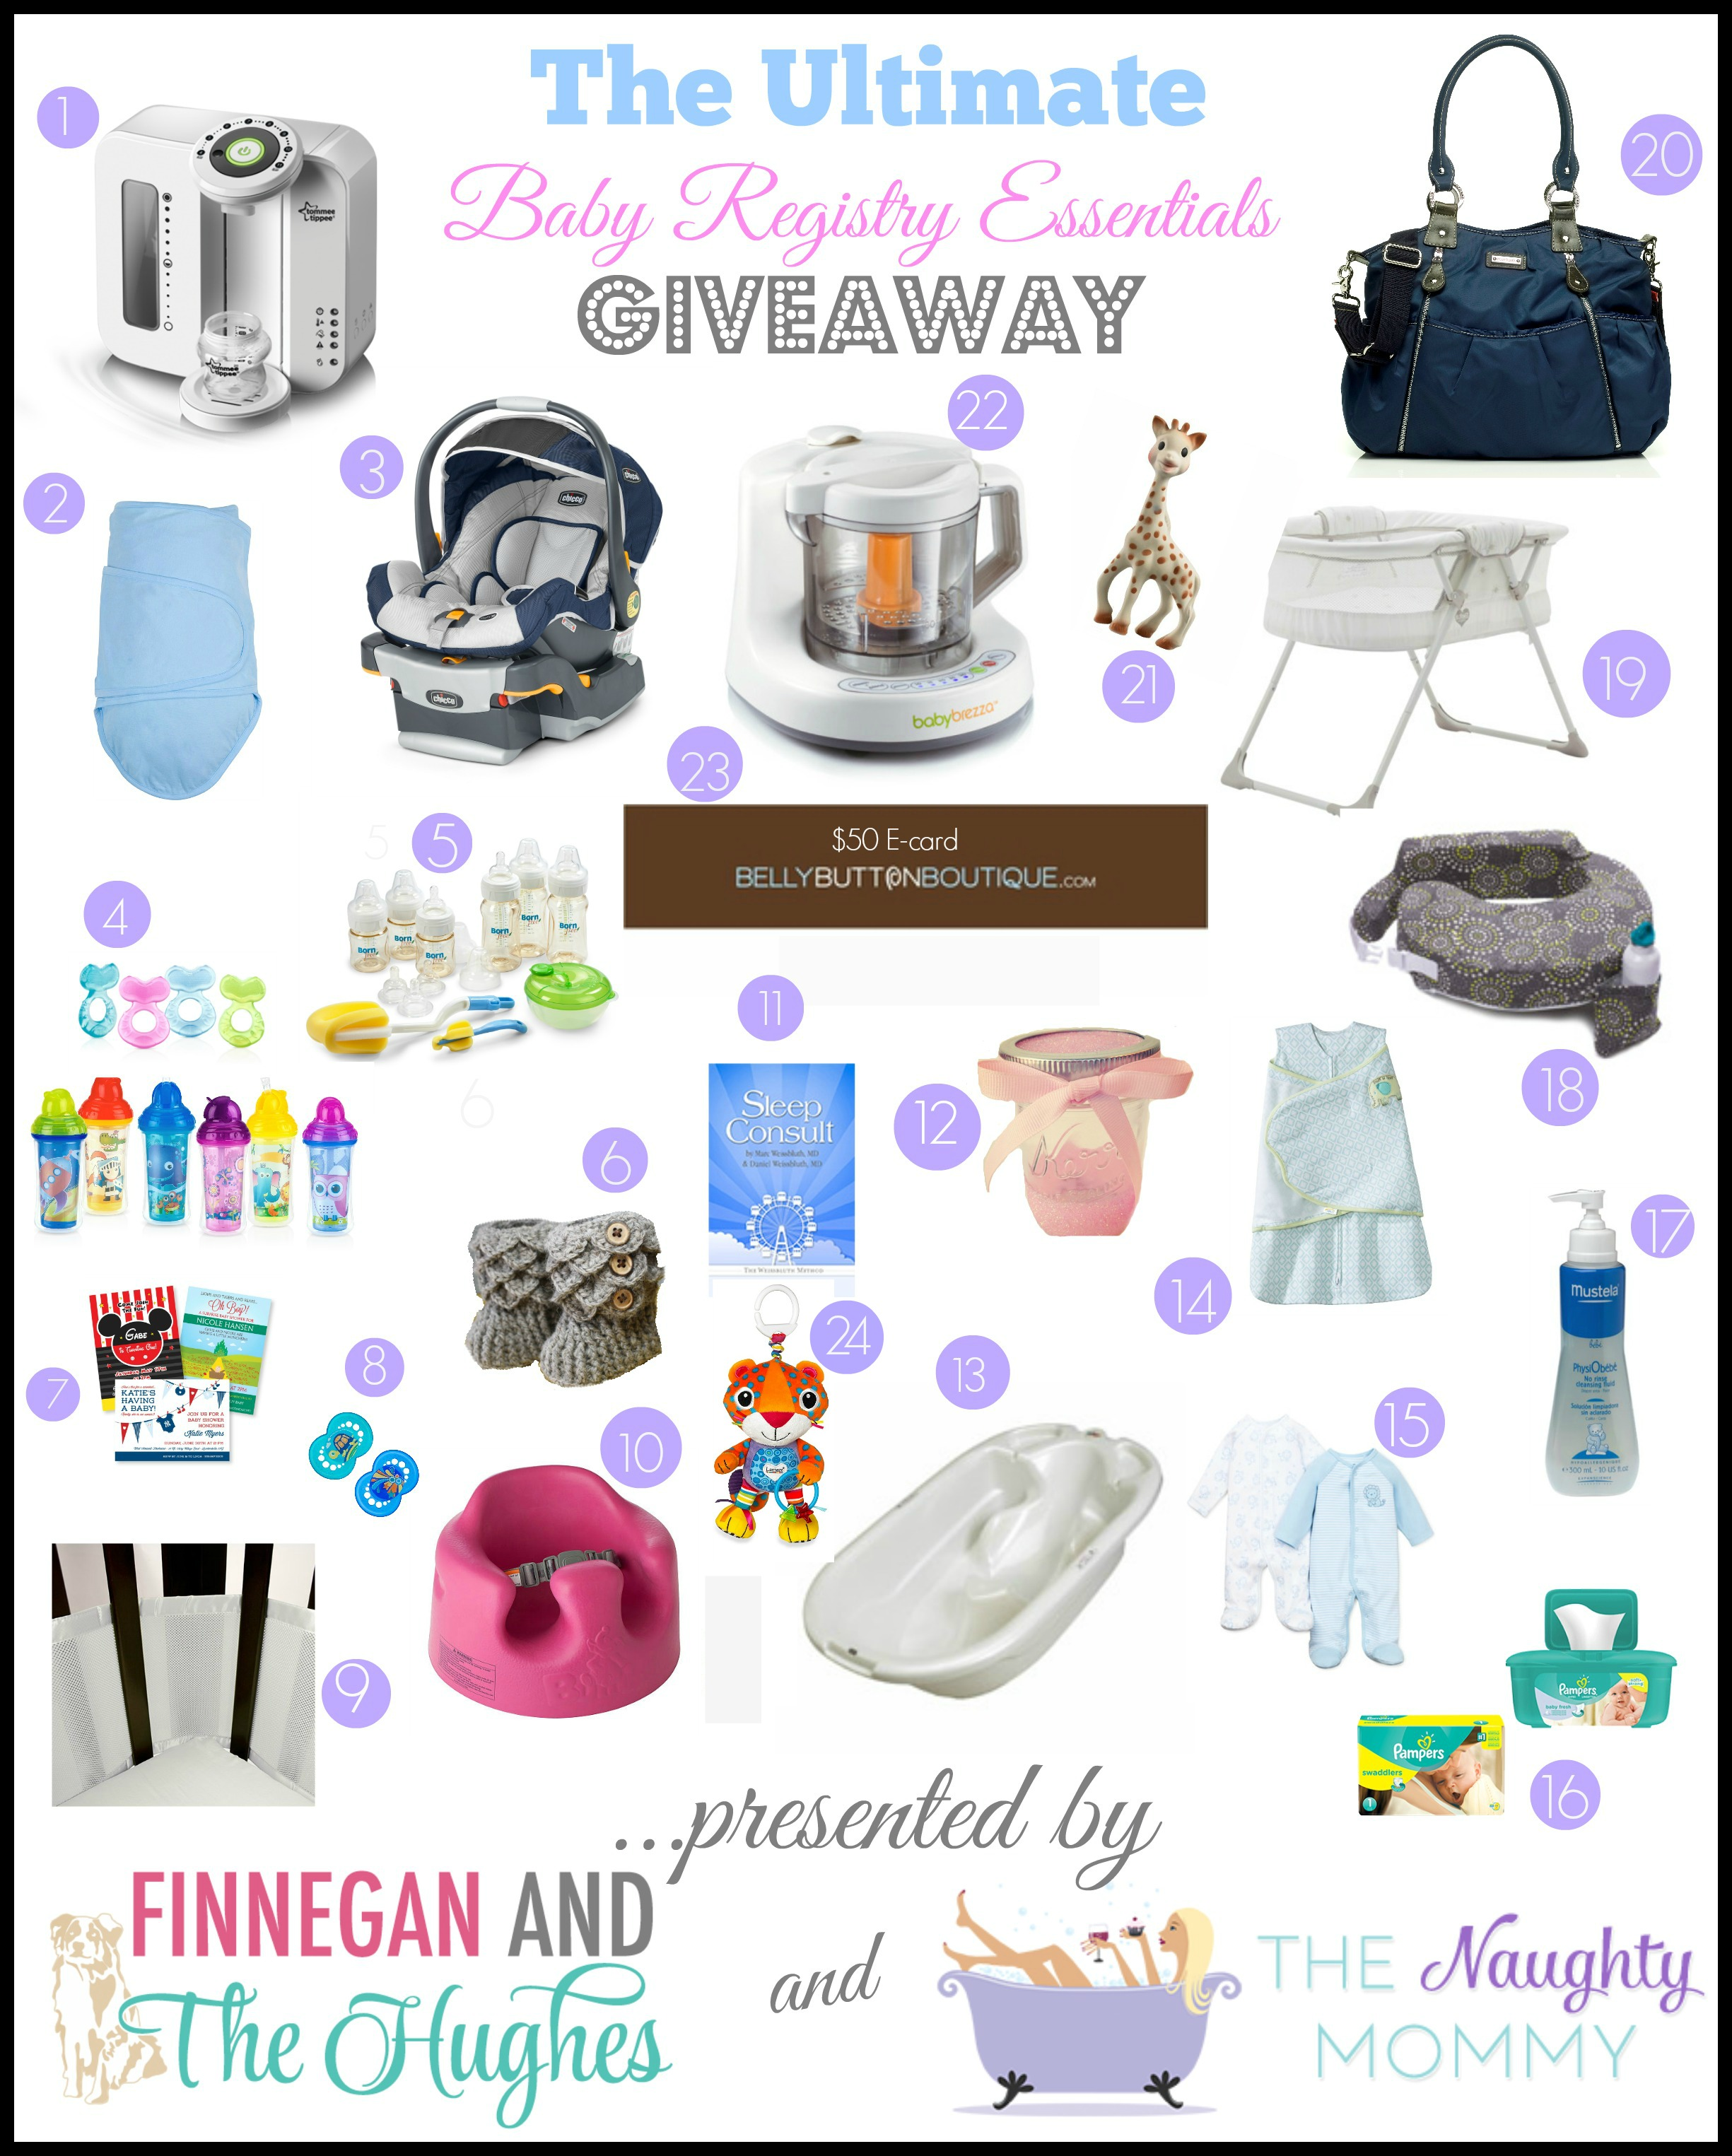 Baby Registry Essentials Giveaway1 The Ultimate Baby Registry Essentials Giveaway